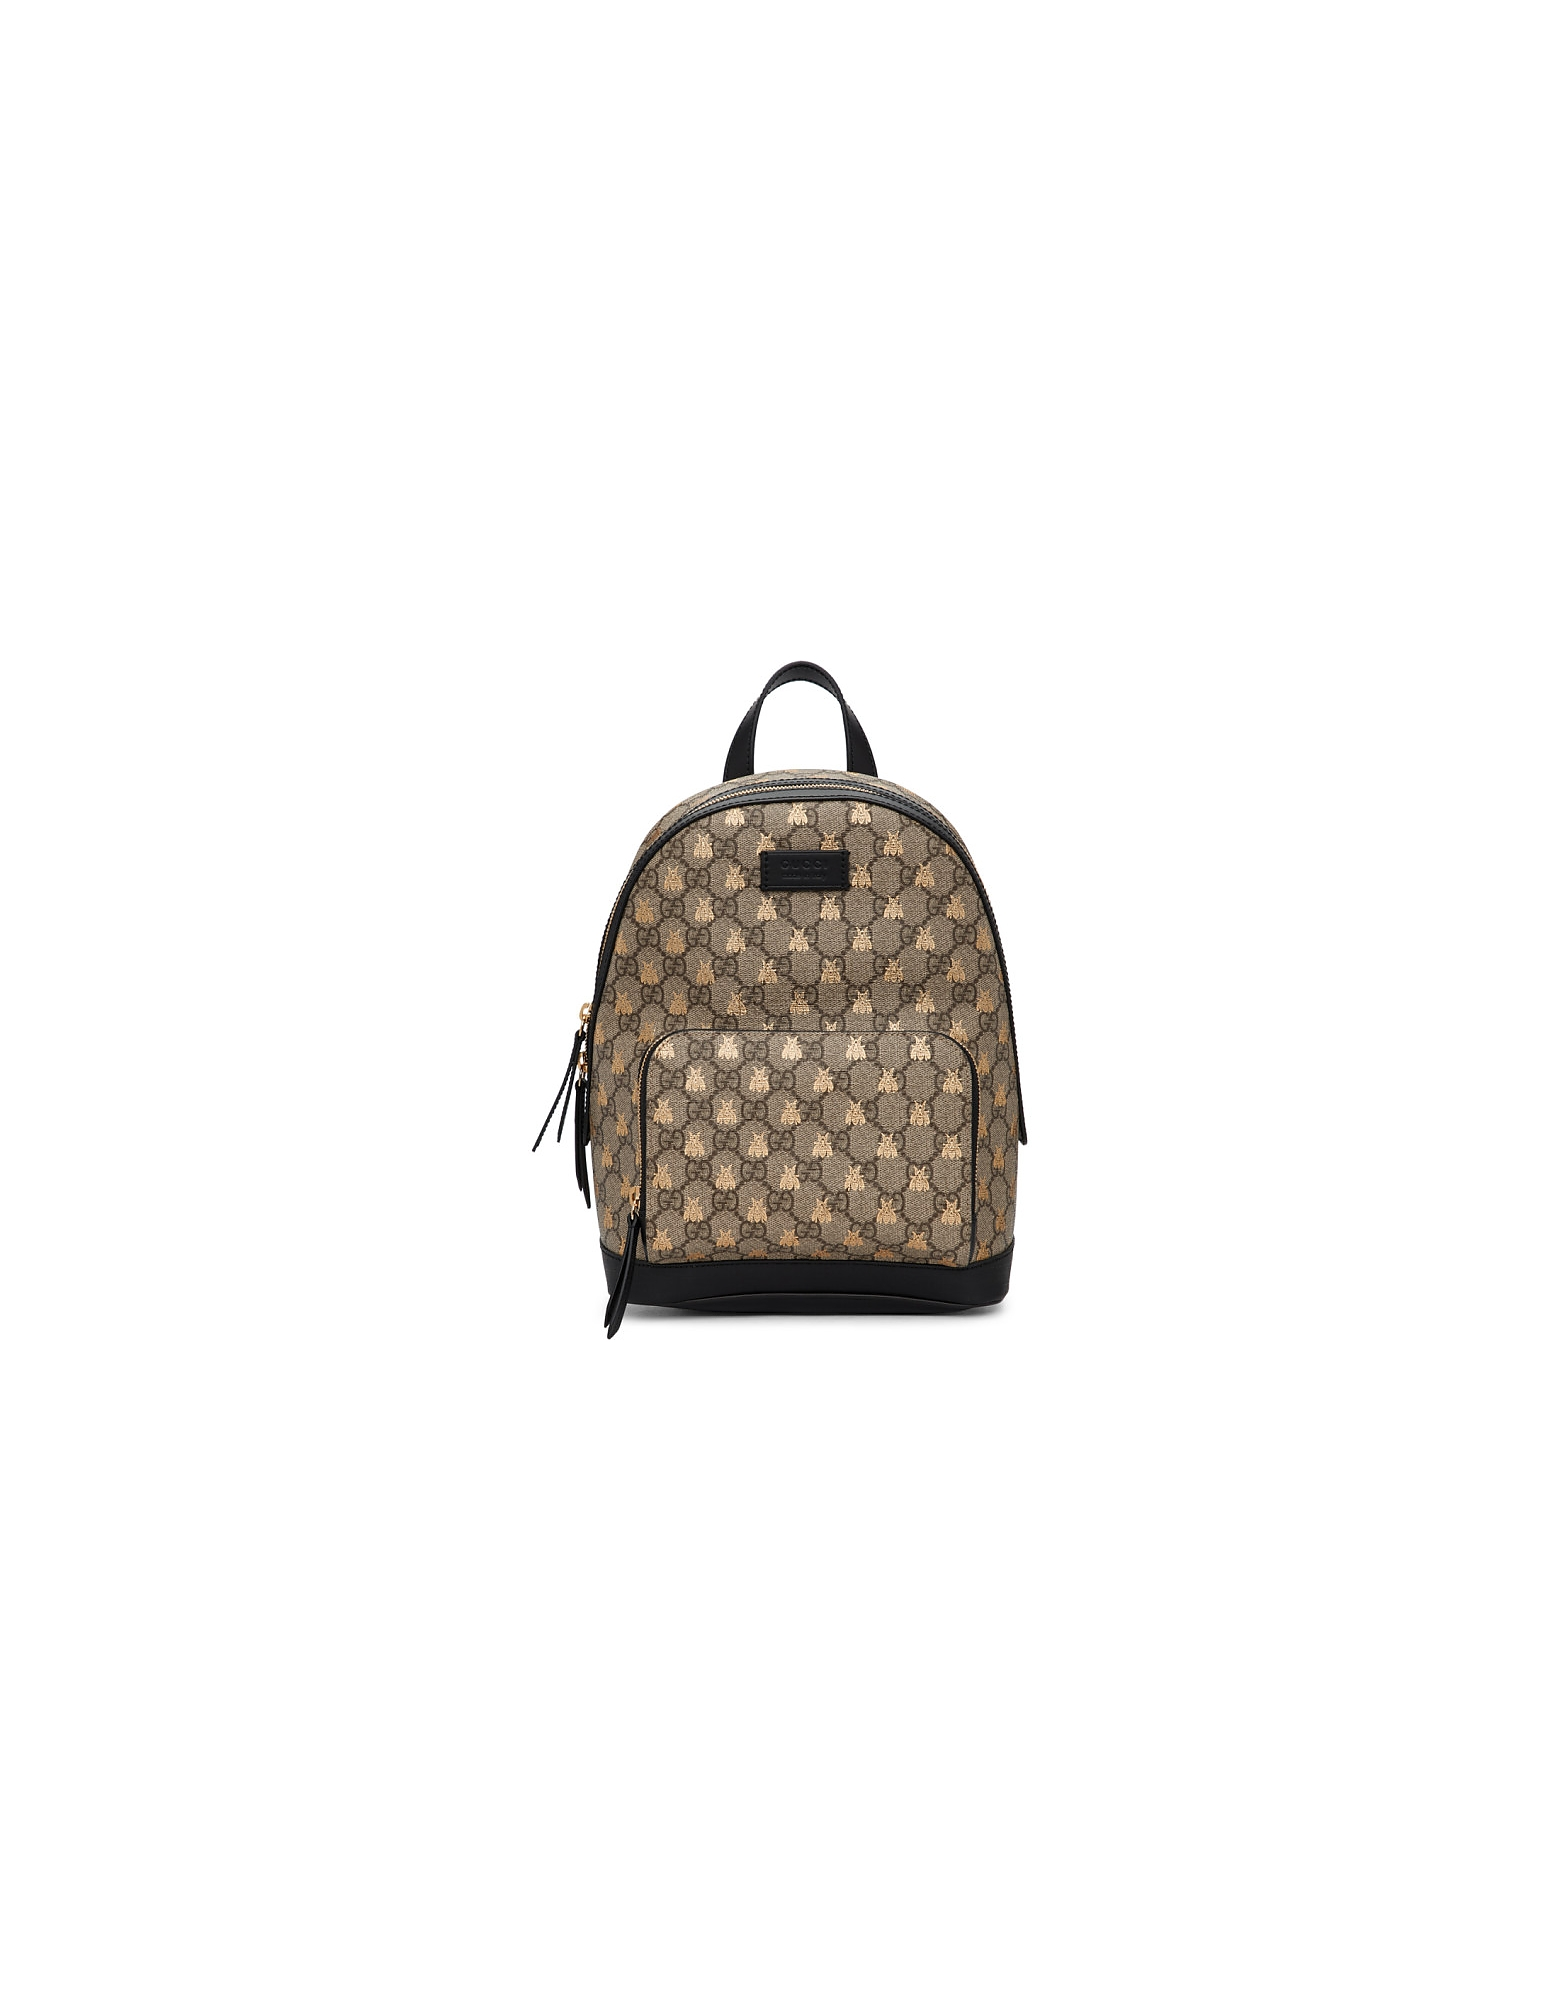 Gucci Designer Handbags, Beige GG Supreme Bestiary Backpack